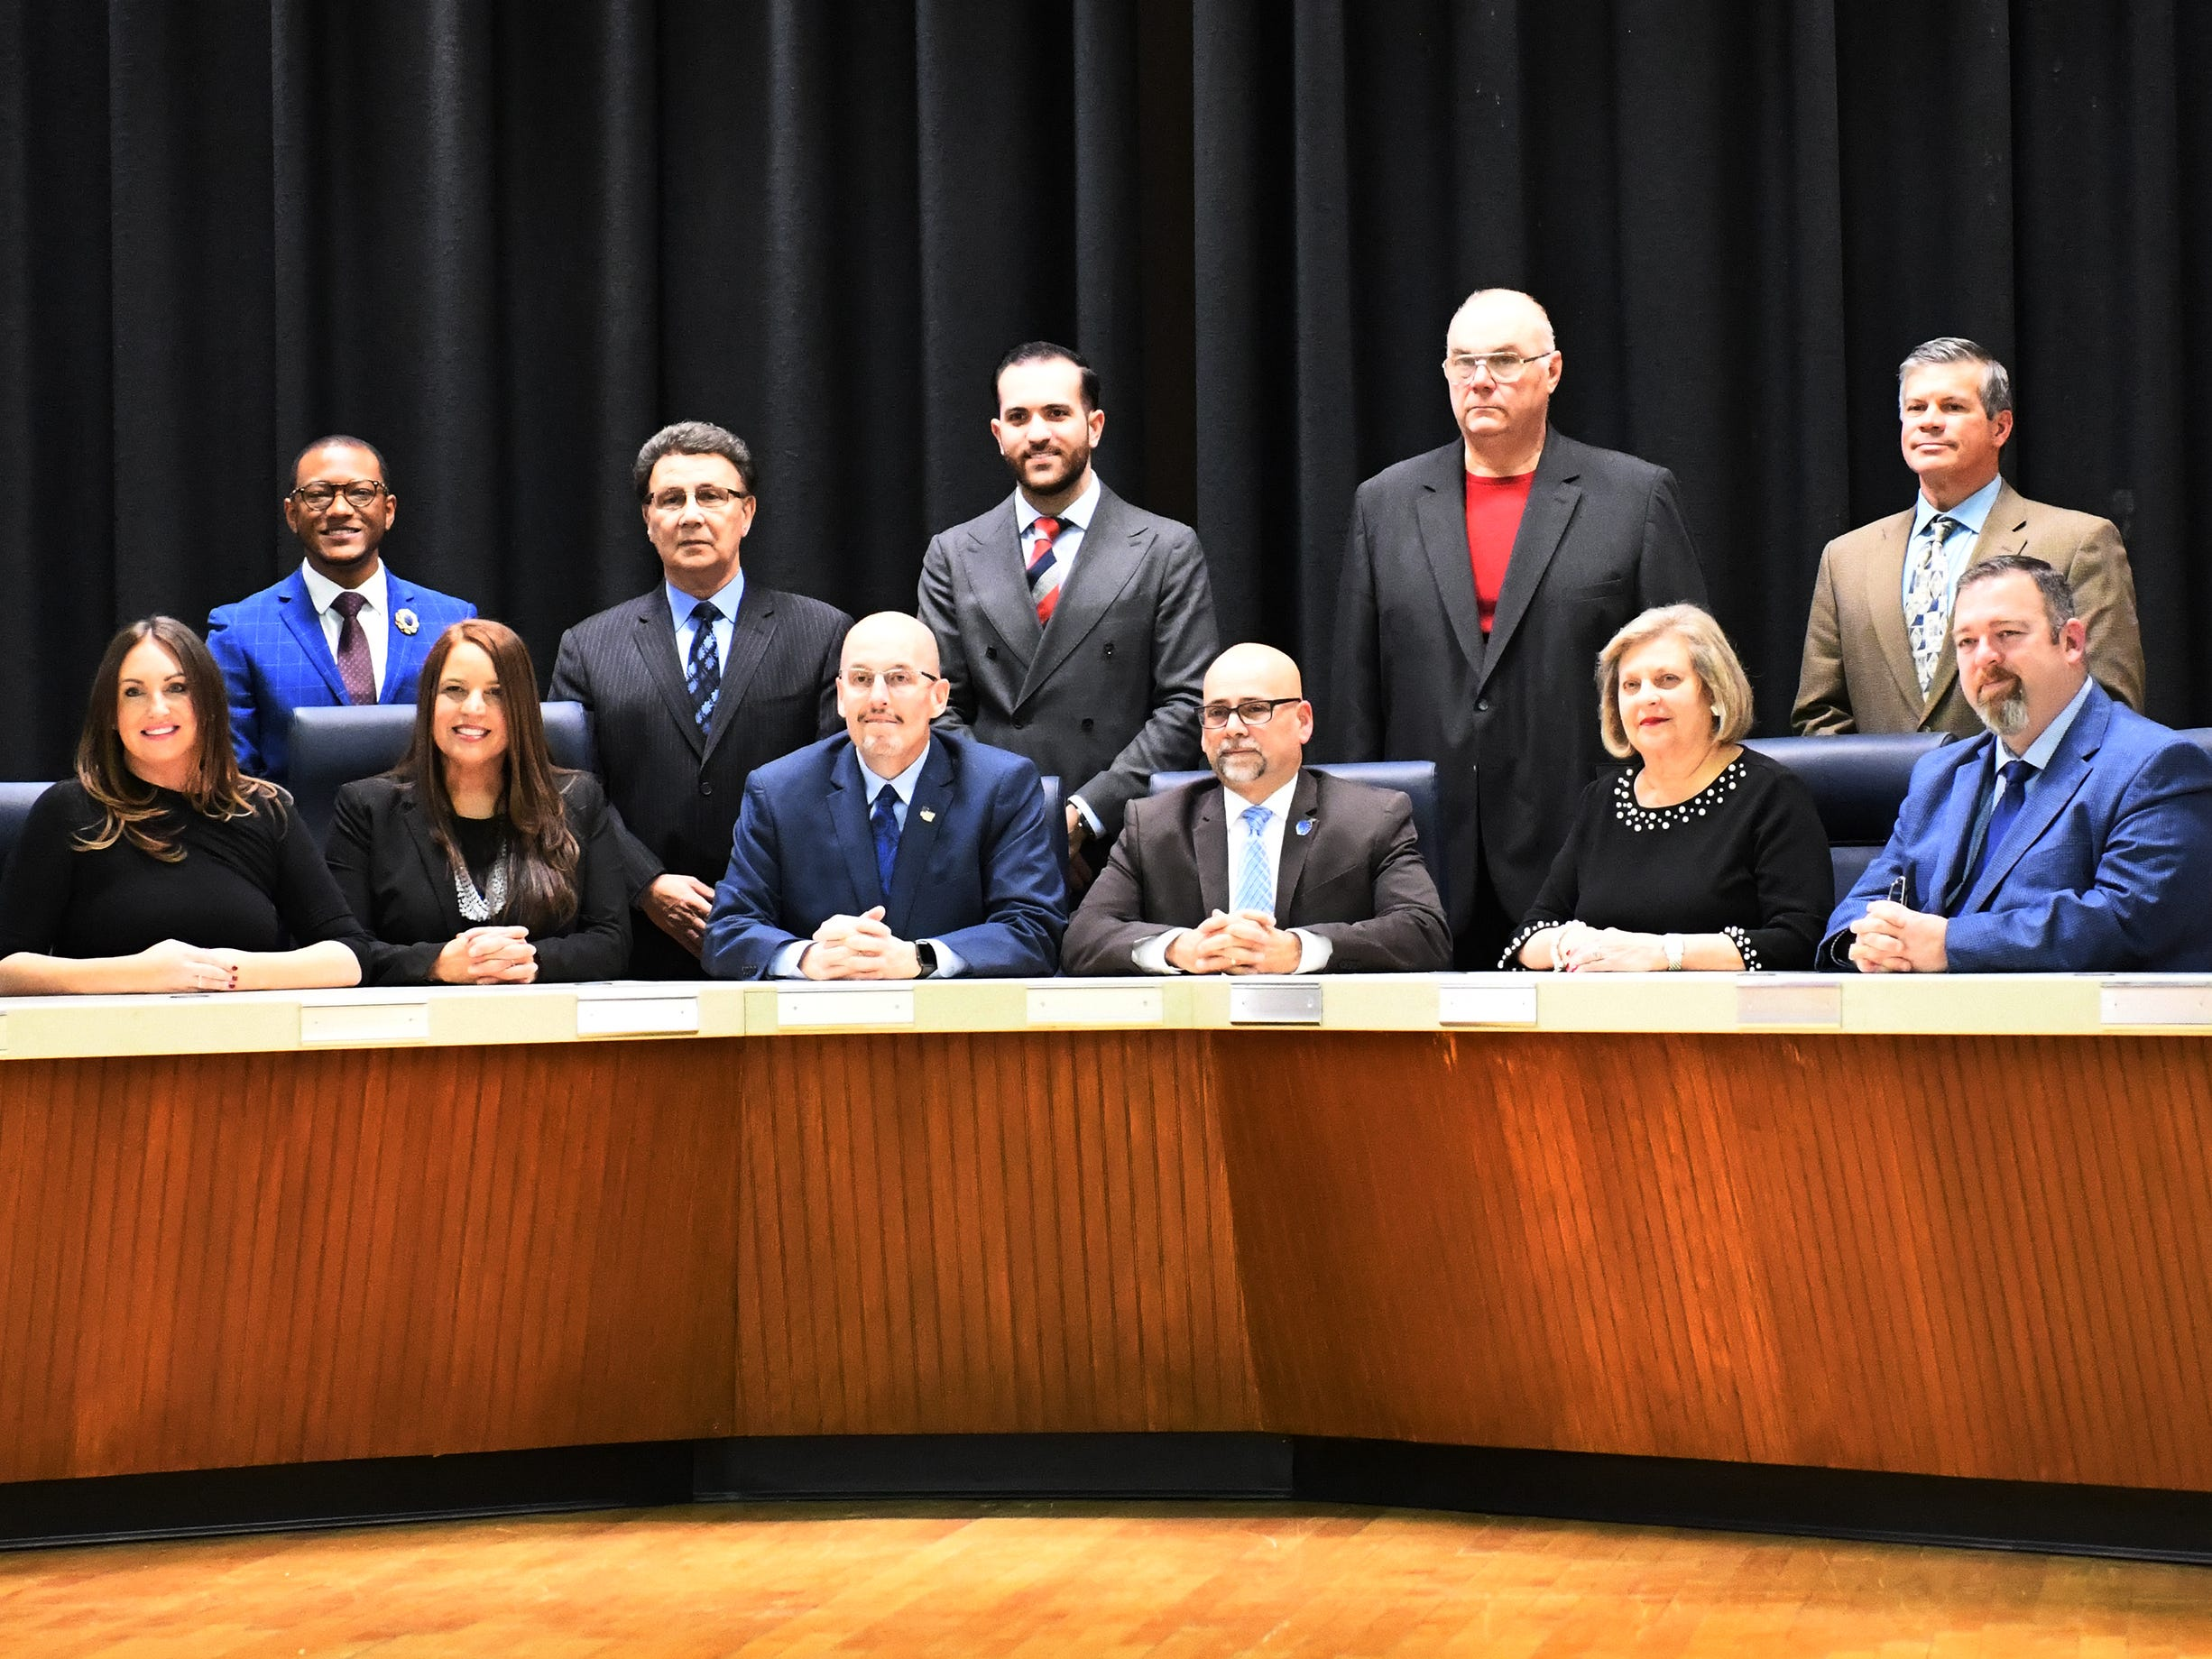 The Vineland Board of Education posses for a group photo following a reorganization meeting on Wednesday, January 2, 2019.